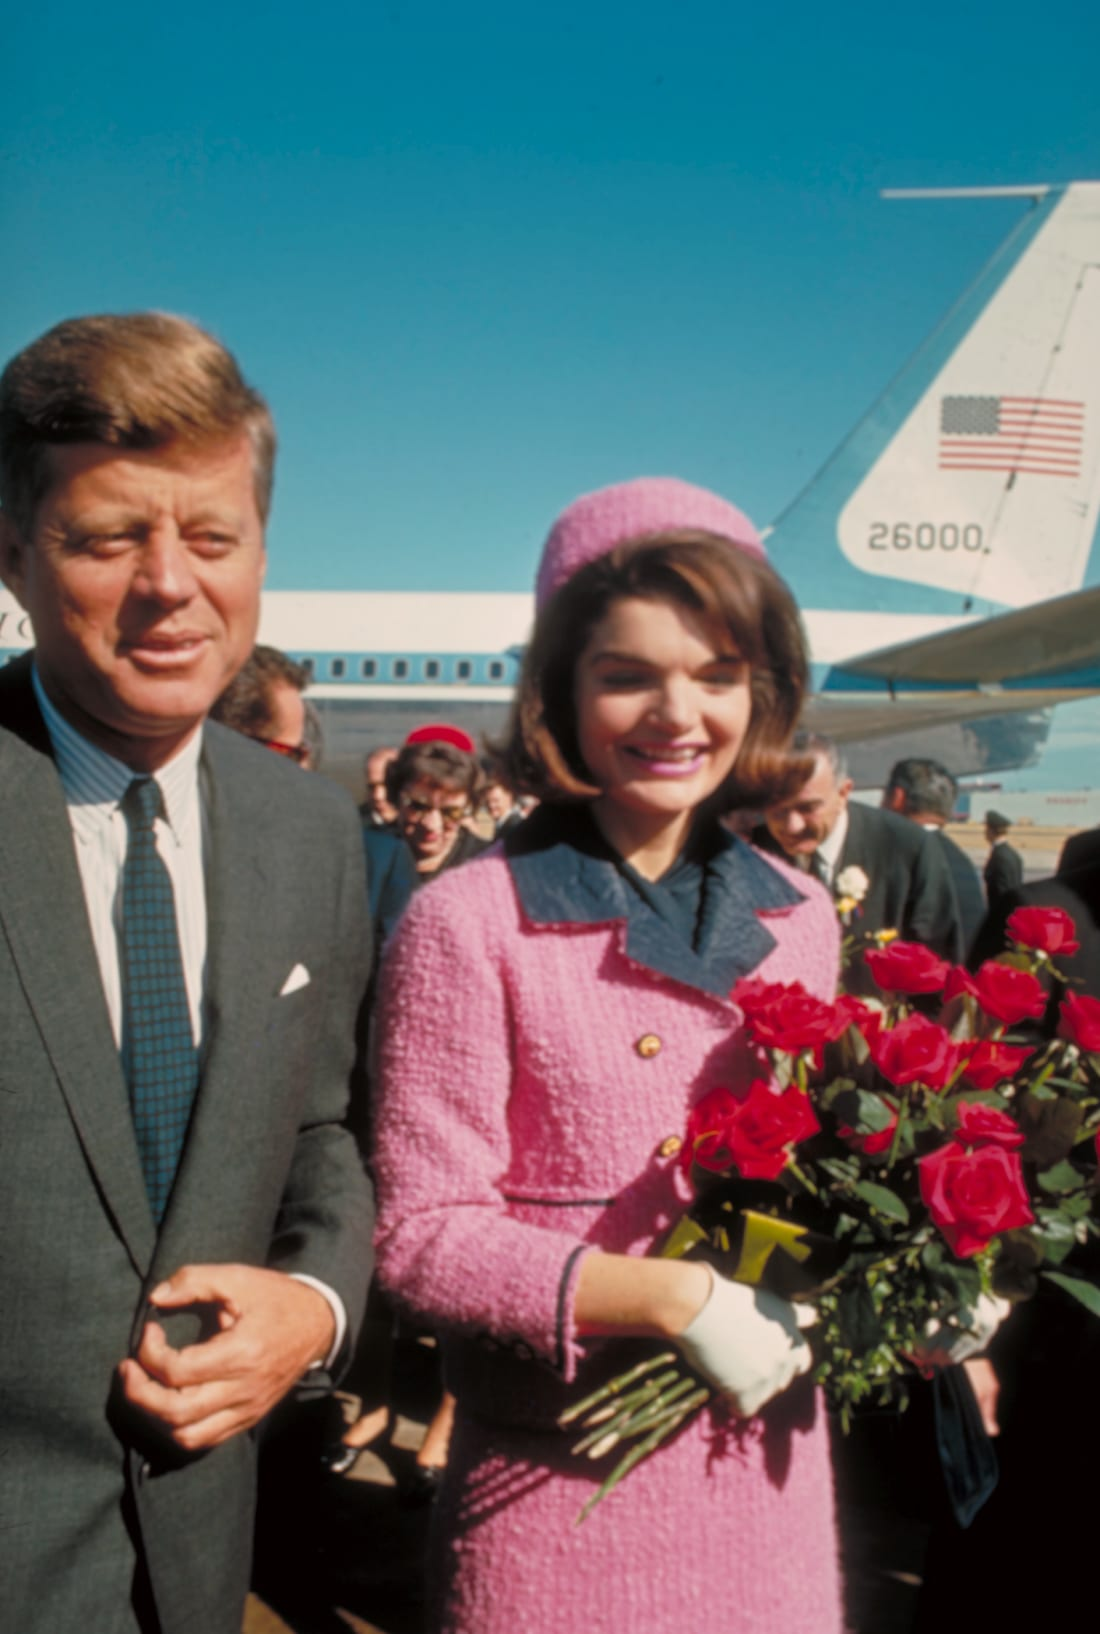 President John F. Kennedy and his wife Jackie on November 22, 1963,  just after their arrival at the airport for the fateful drive through Dallas.